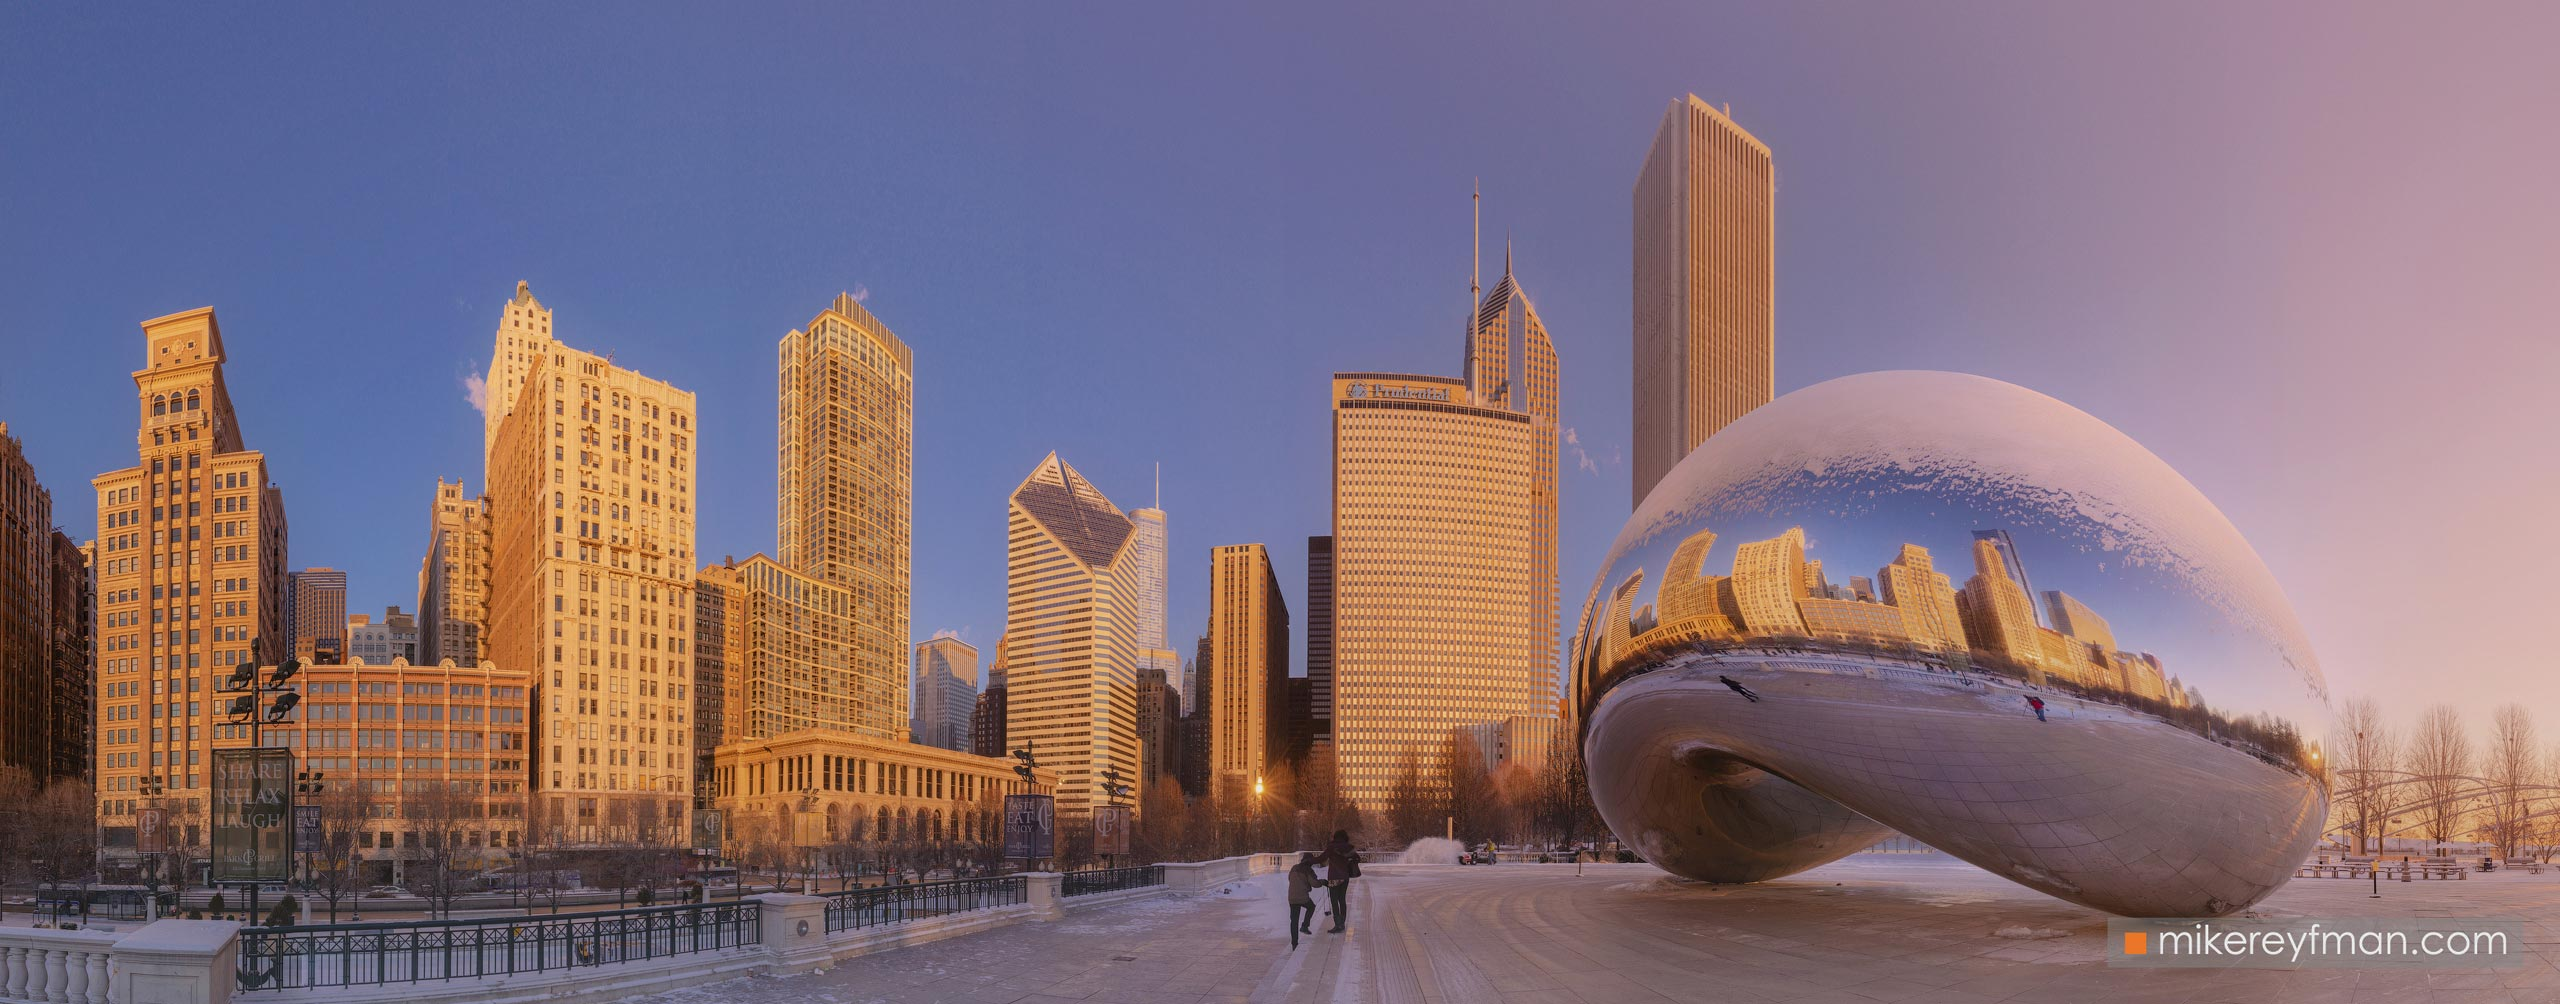 "Cloud Gate - ""The Bean"". Millennium Park, Chicago, Illinois, USA 102-CH1-D8C8301_Pano_1x2.55 - Chicago, USA: The"